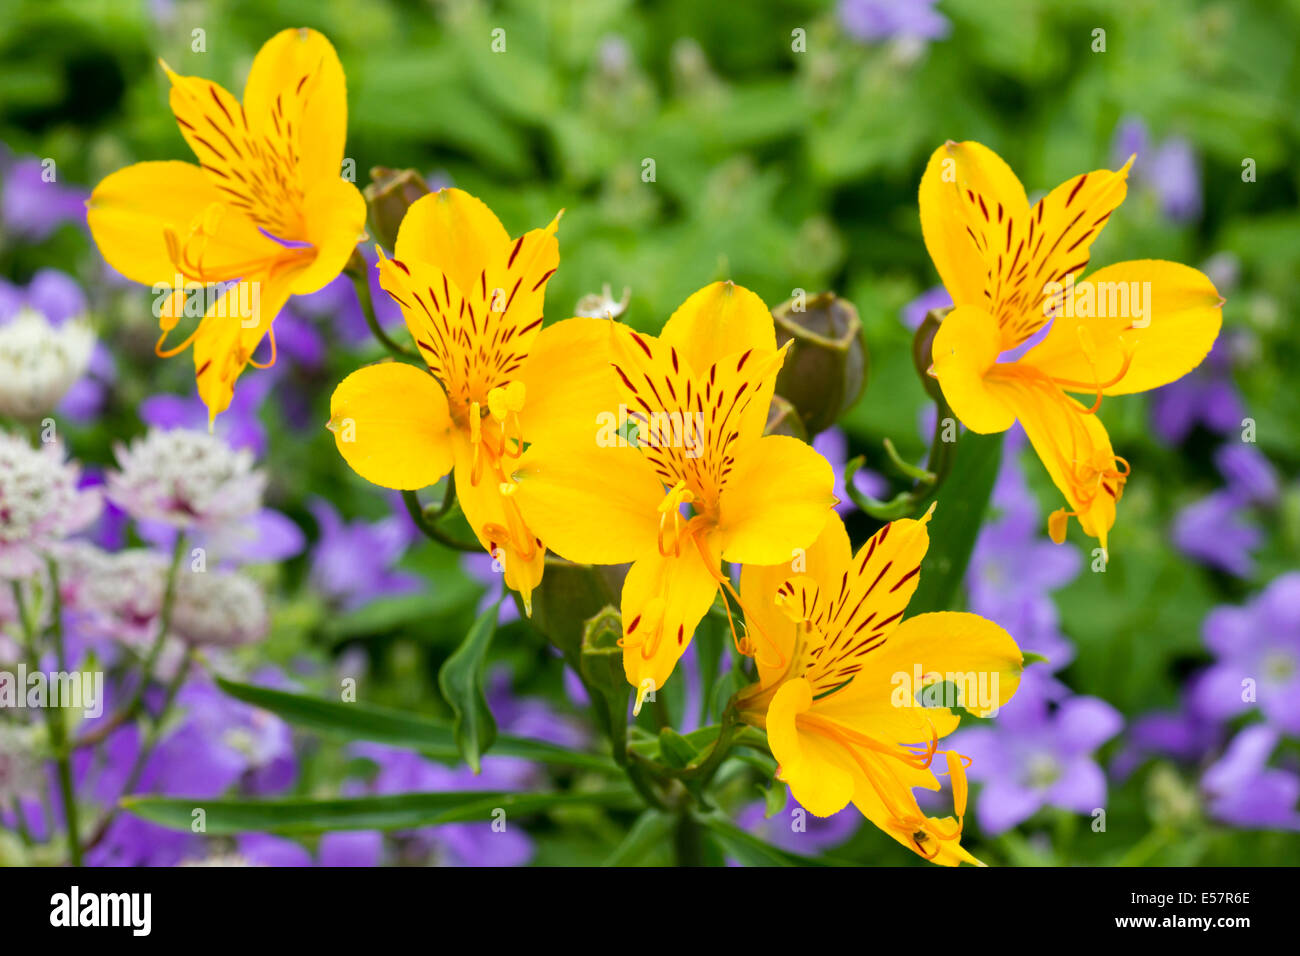 Flowers Of The Yellow Form Of The Summer Flowering Peruvian Lily Stock Photo Alamy